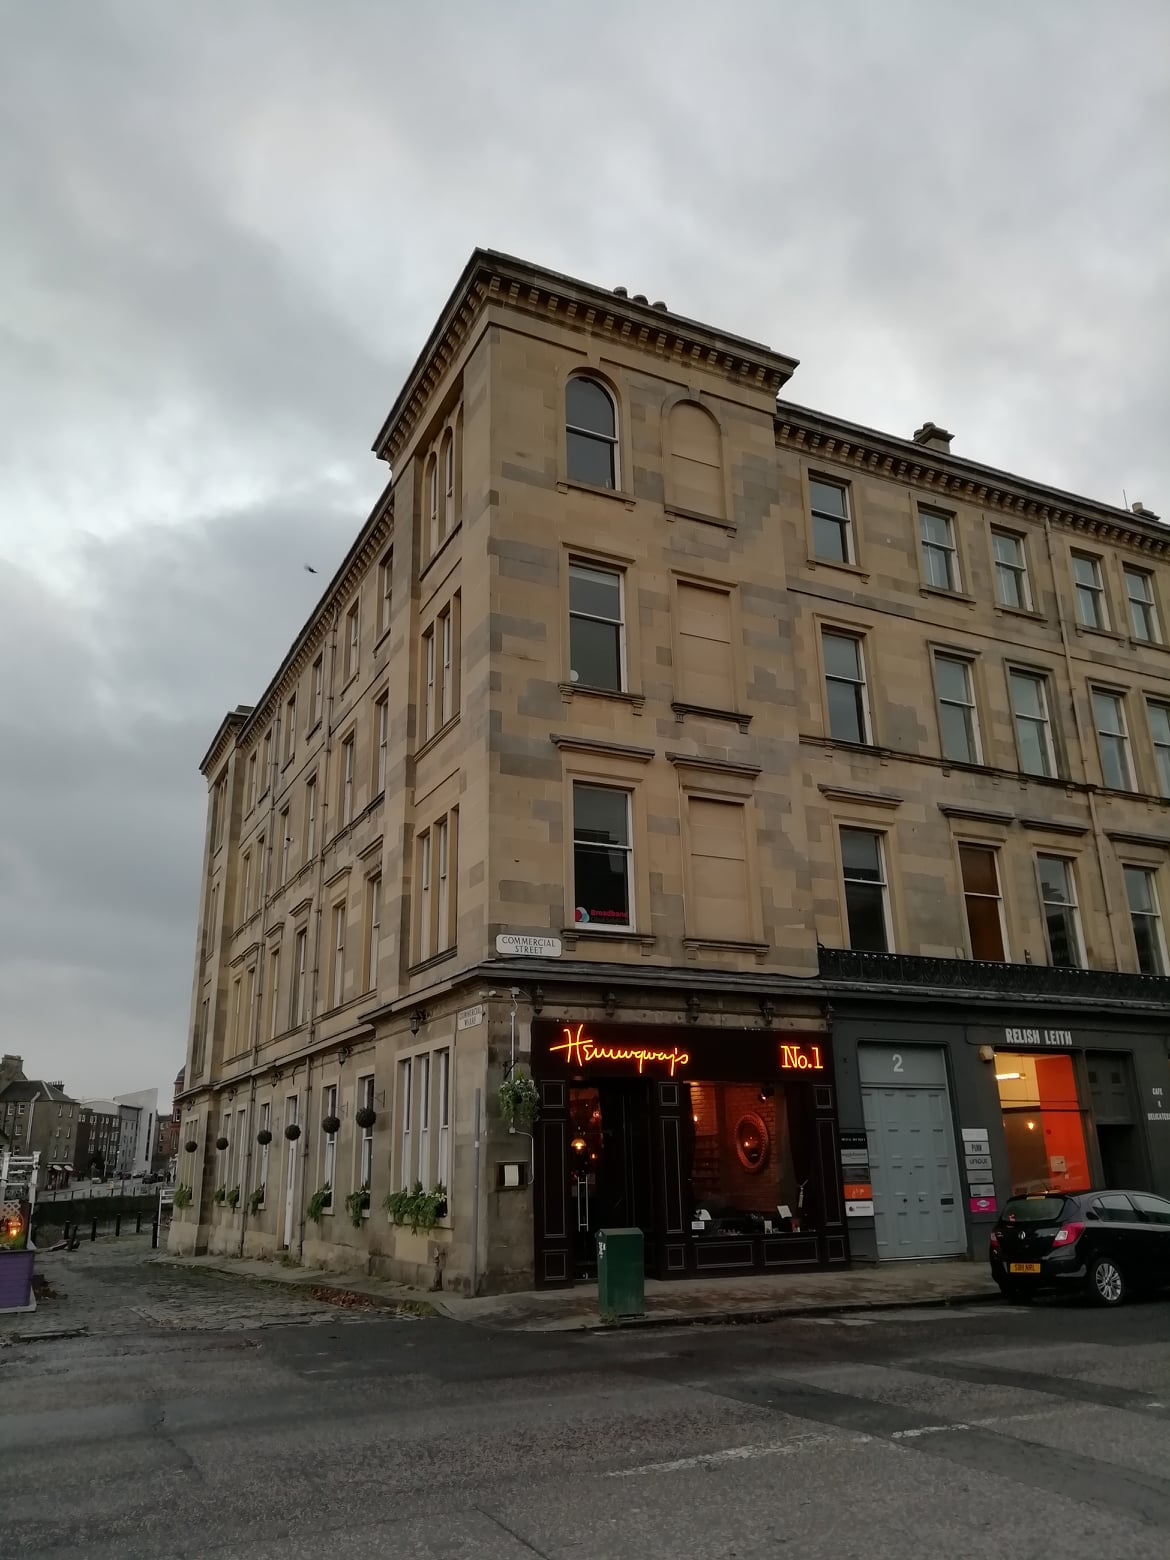 Hemingway's, Commercial Street, Leith